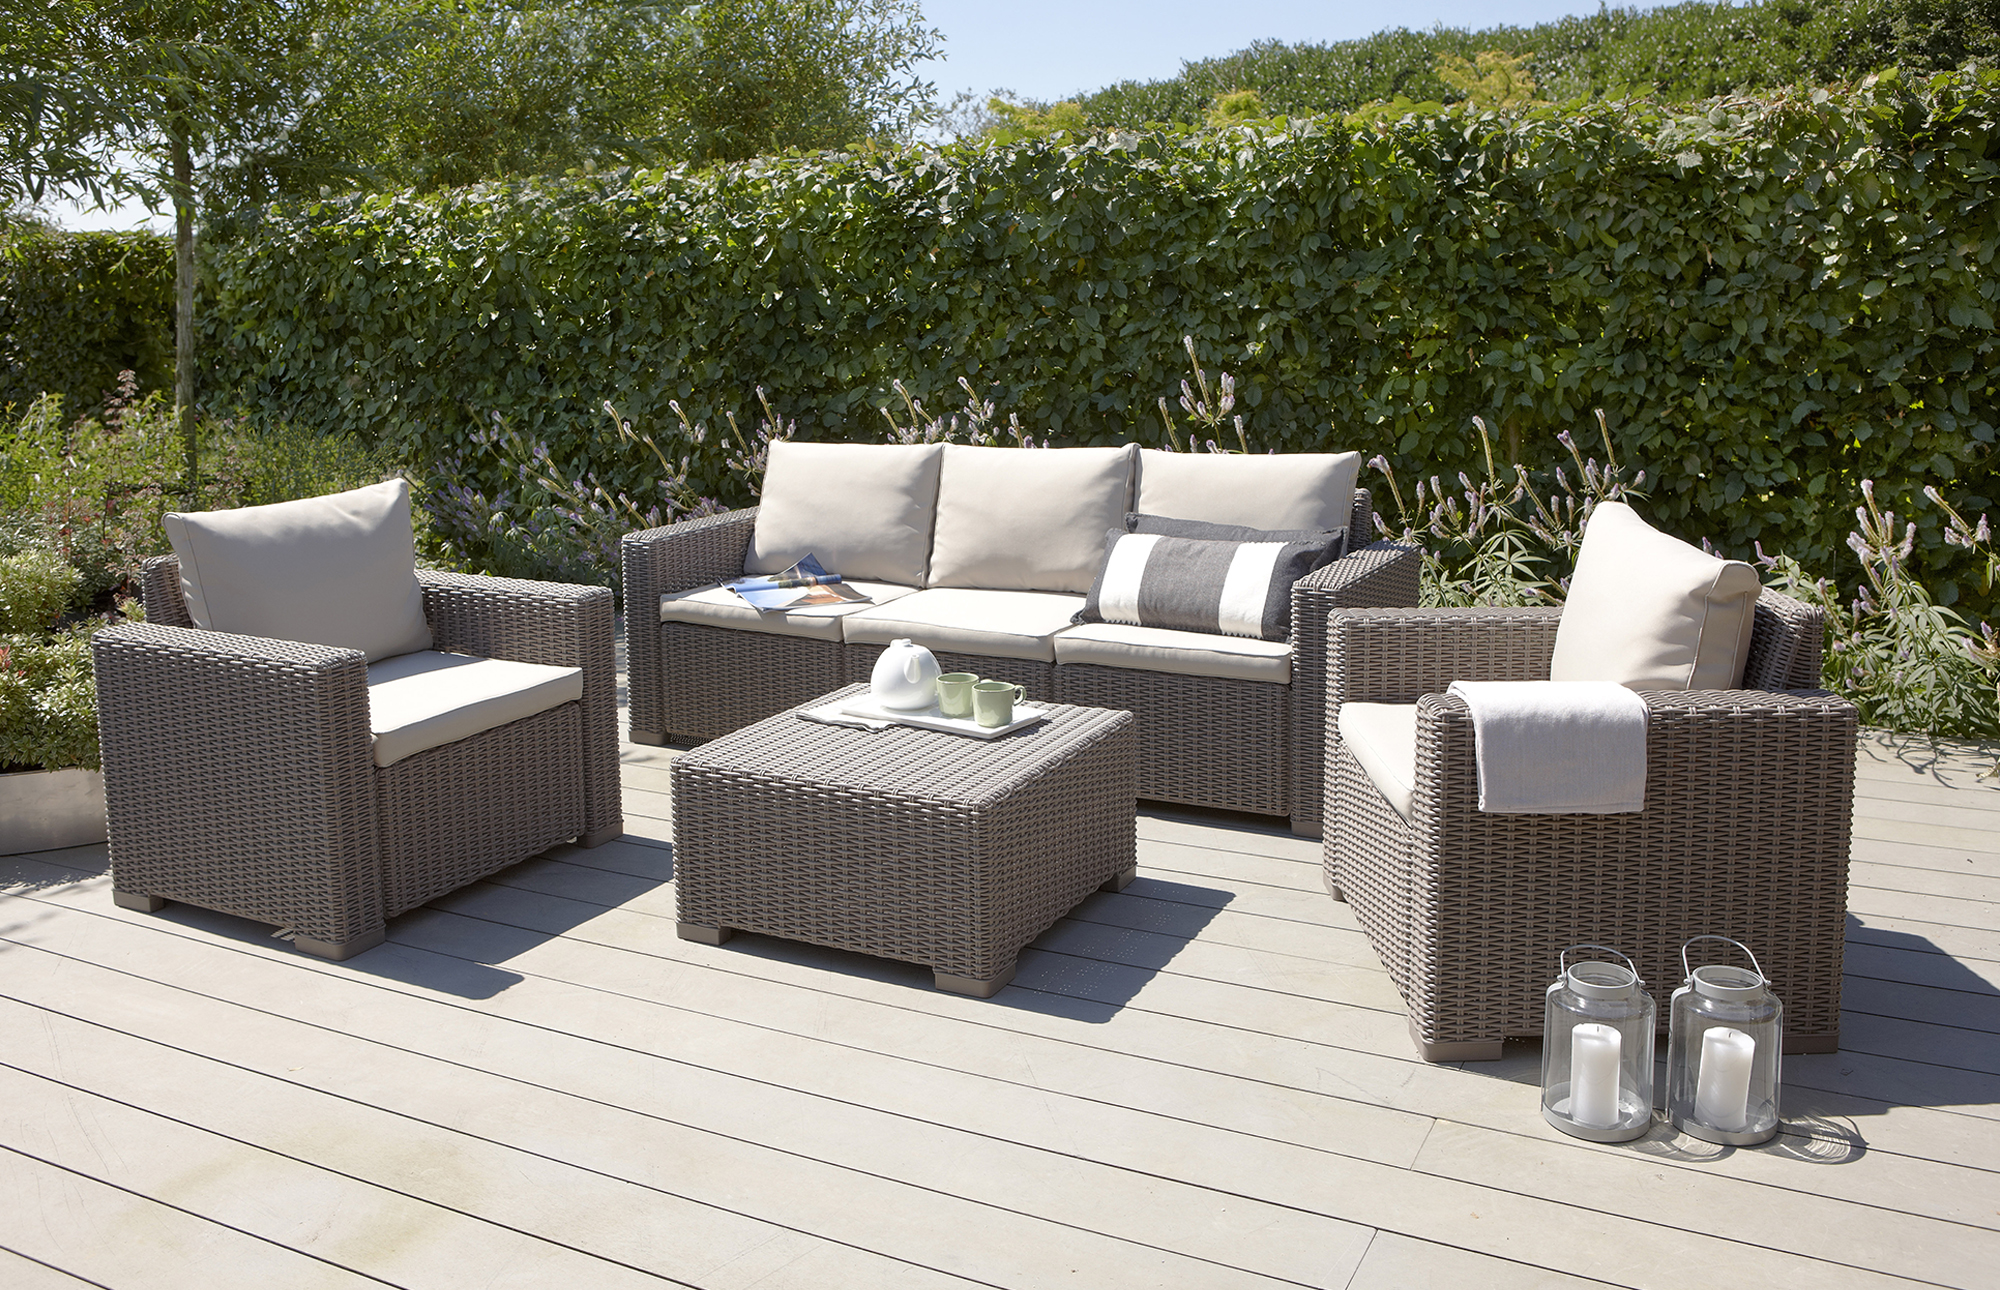 for rattan garden furniture inspiring 4 piece rattan garden furniture KYTGBDQ